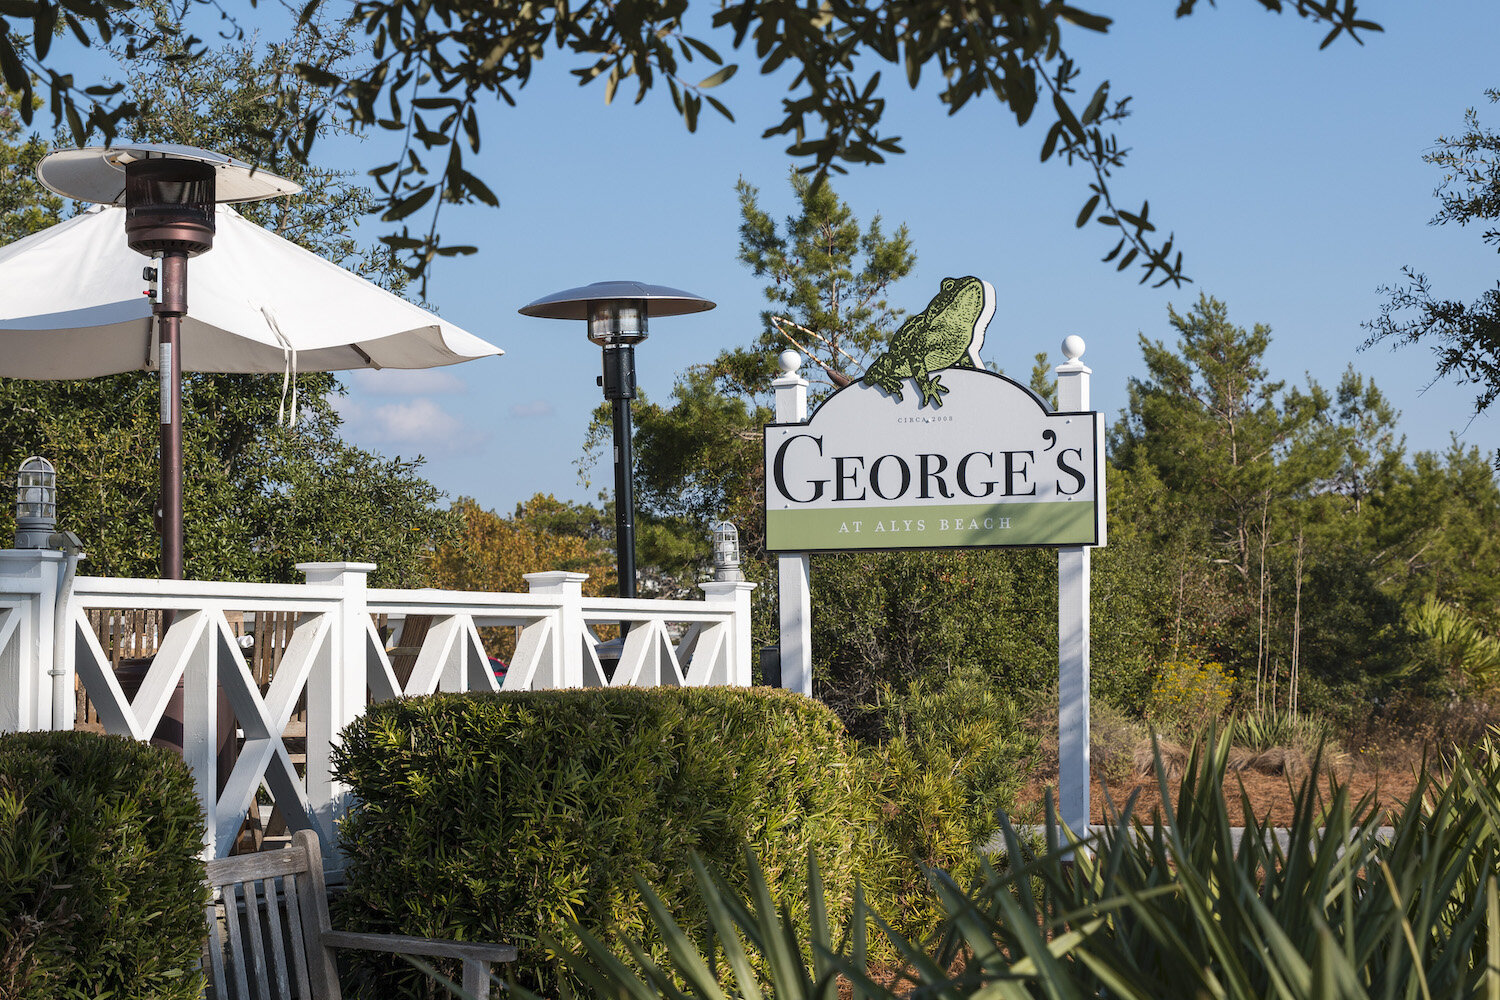 George's is an upscale, casual restaurant bringing regional coastal flair infused with global flavors to the quaint town of Alys Beach, Florida. Dishes are crafted using locally sourced, organic produce and the freshest seafood available. - Behave or Misbehave...